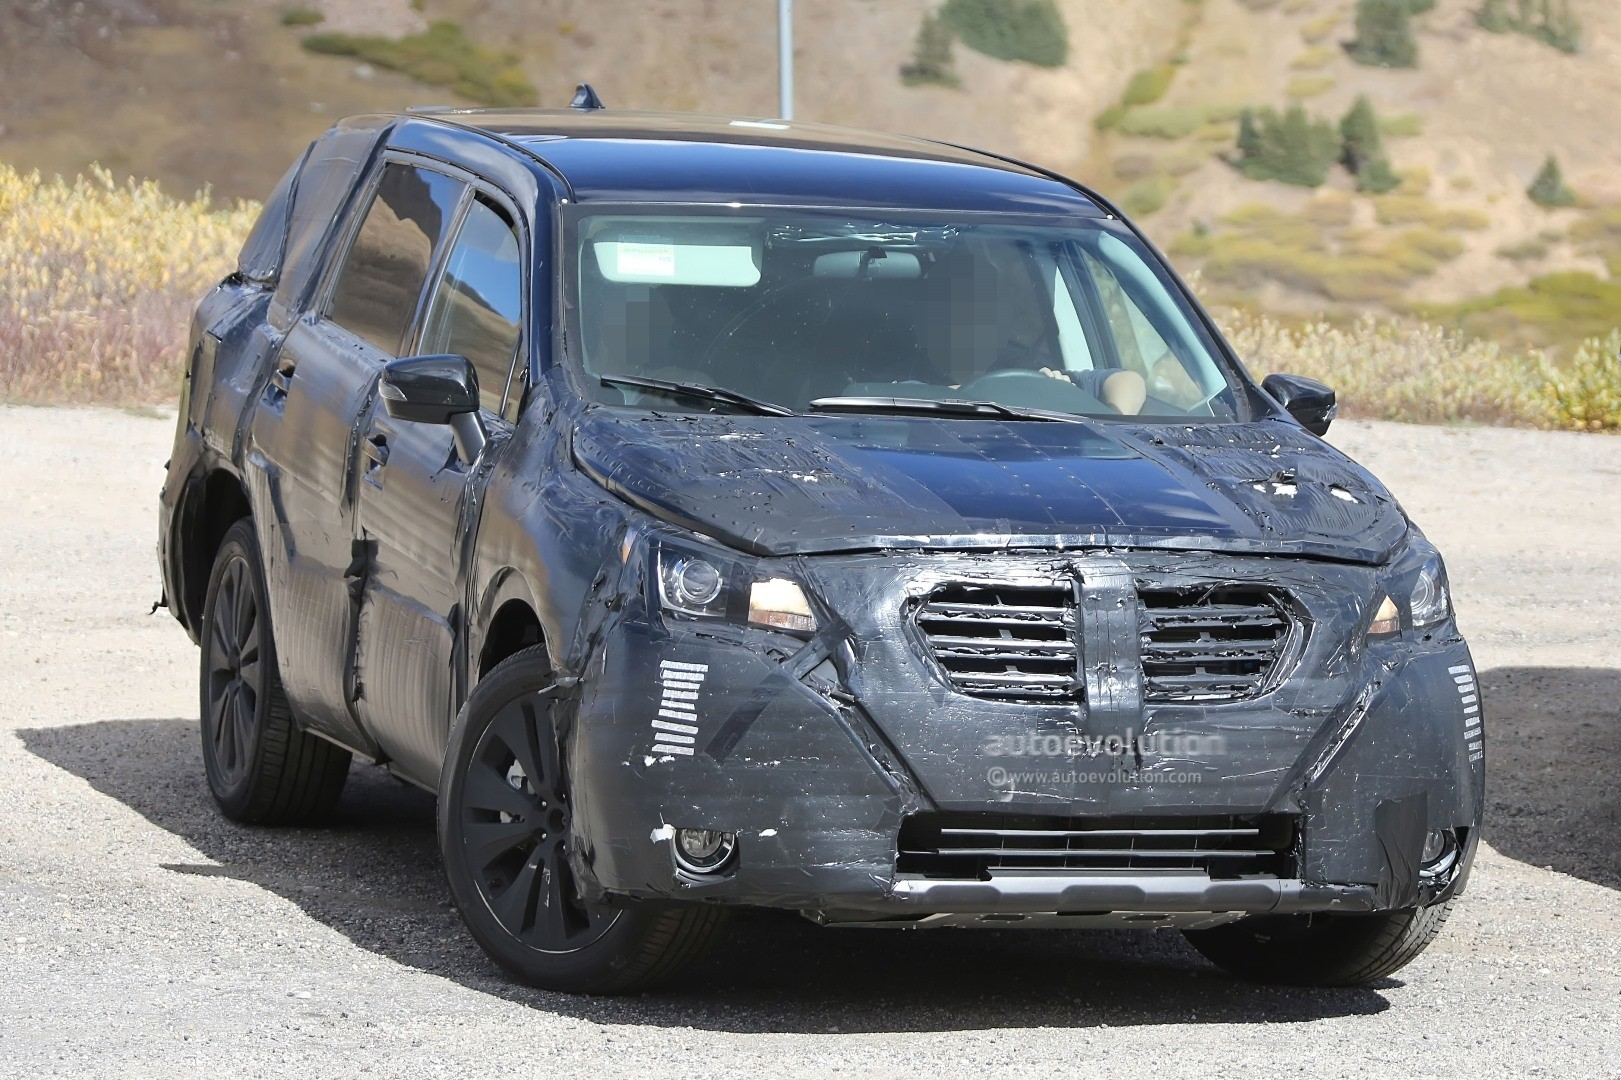 2019 Subaru Three Row Crossover Is Expected To Get Hybrid ...